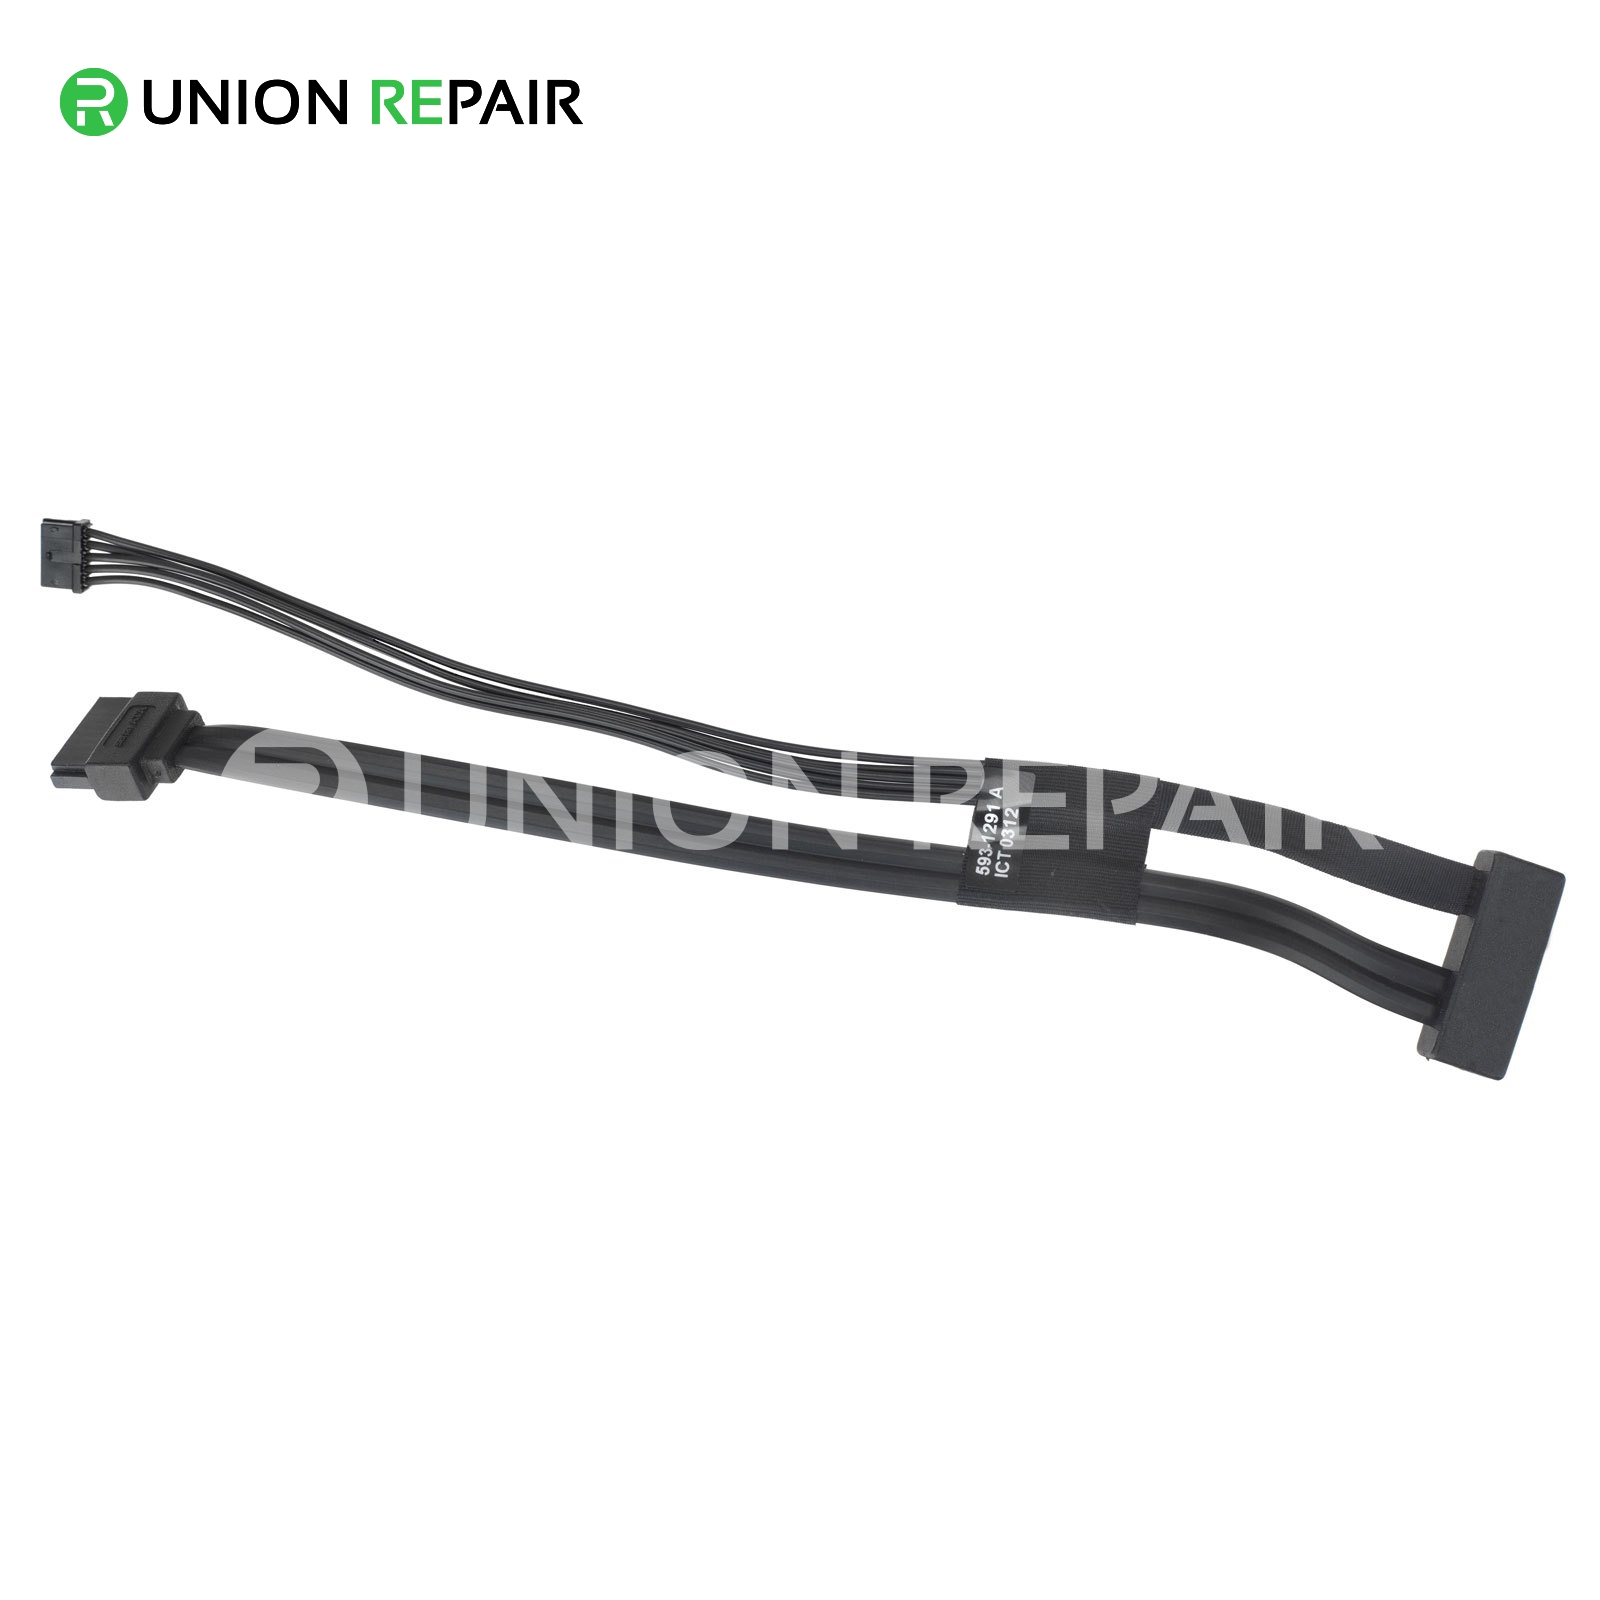 """Optical Drive Flex Cable for iMac 21.5"""" A1311 (Mid 2011 - Late 2011)"""